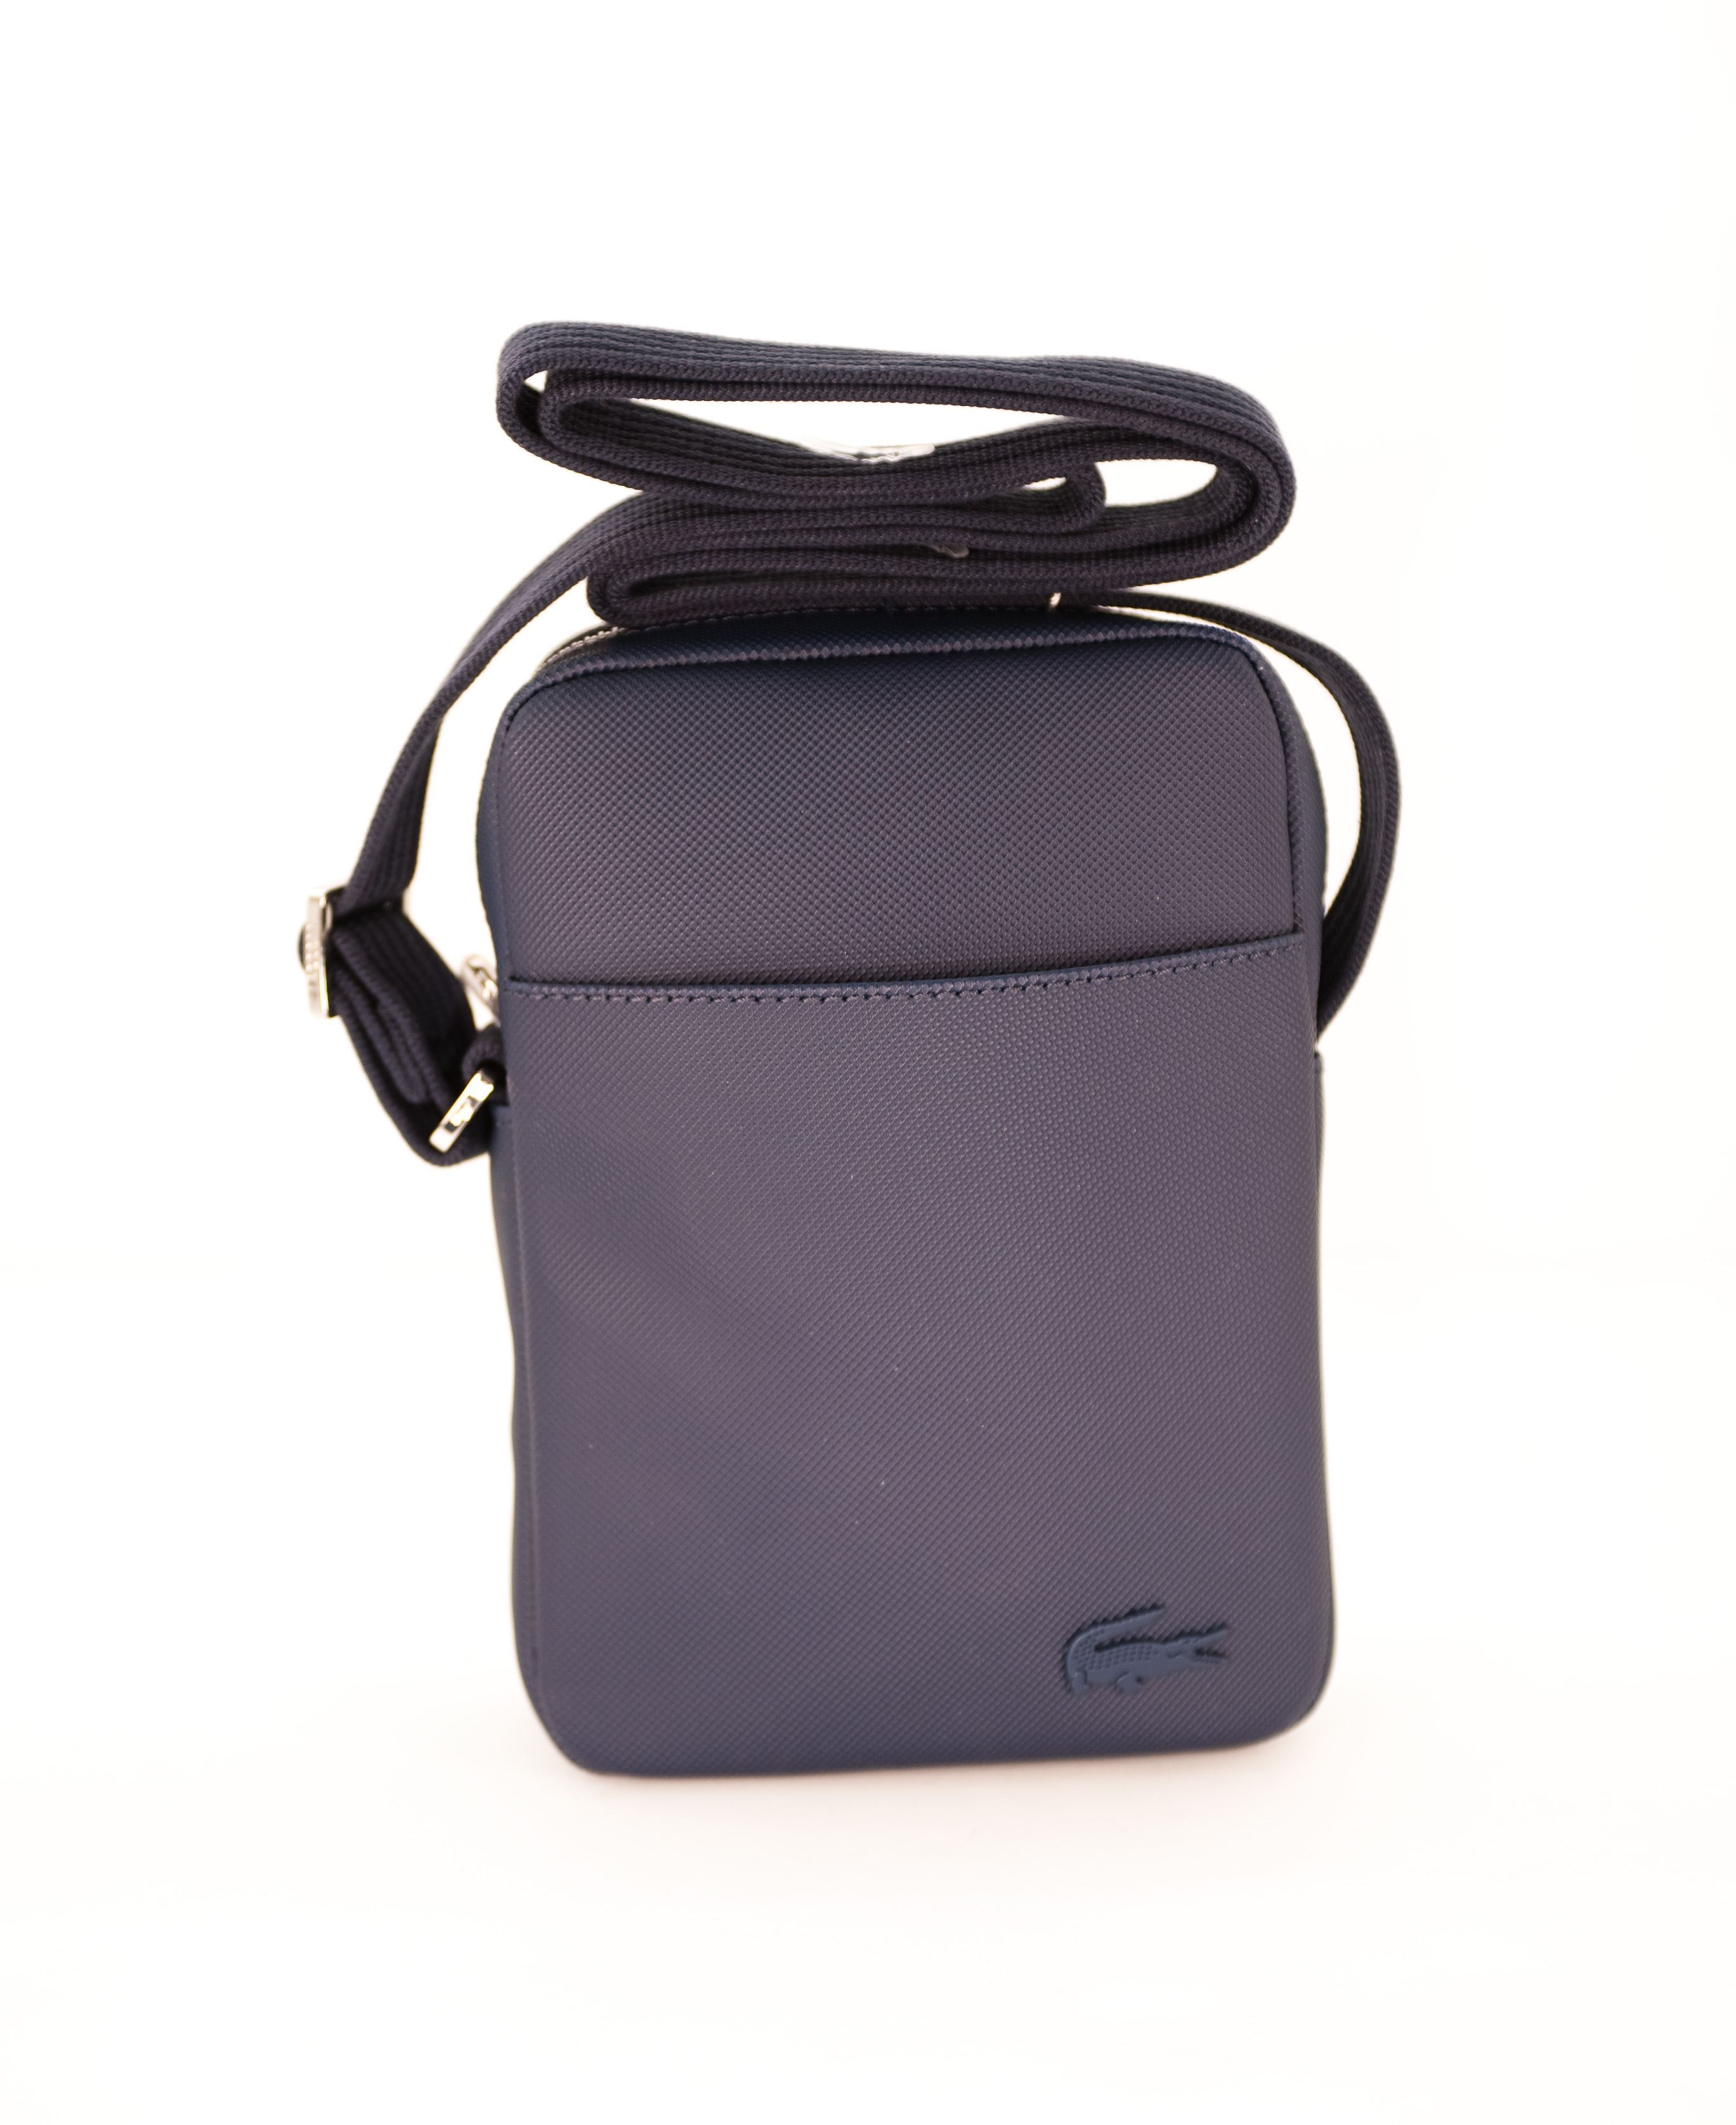 Picture of Lacoste camera case